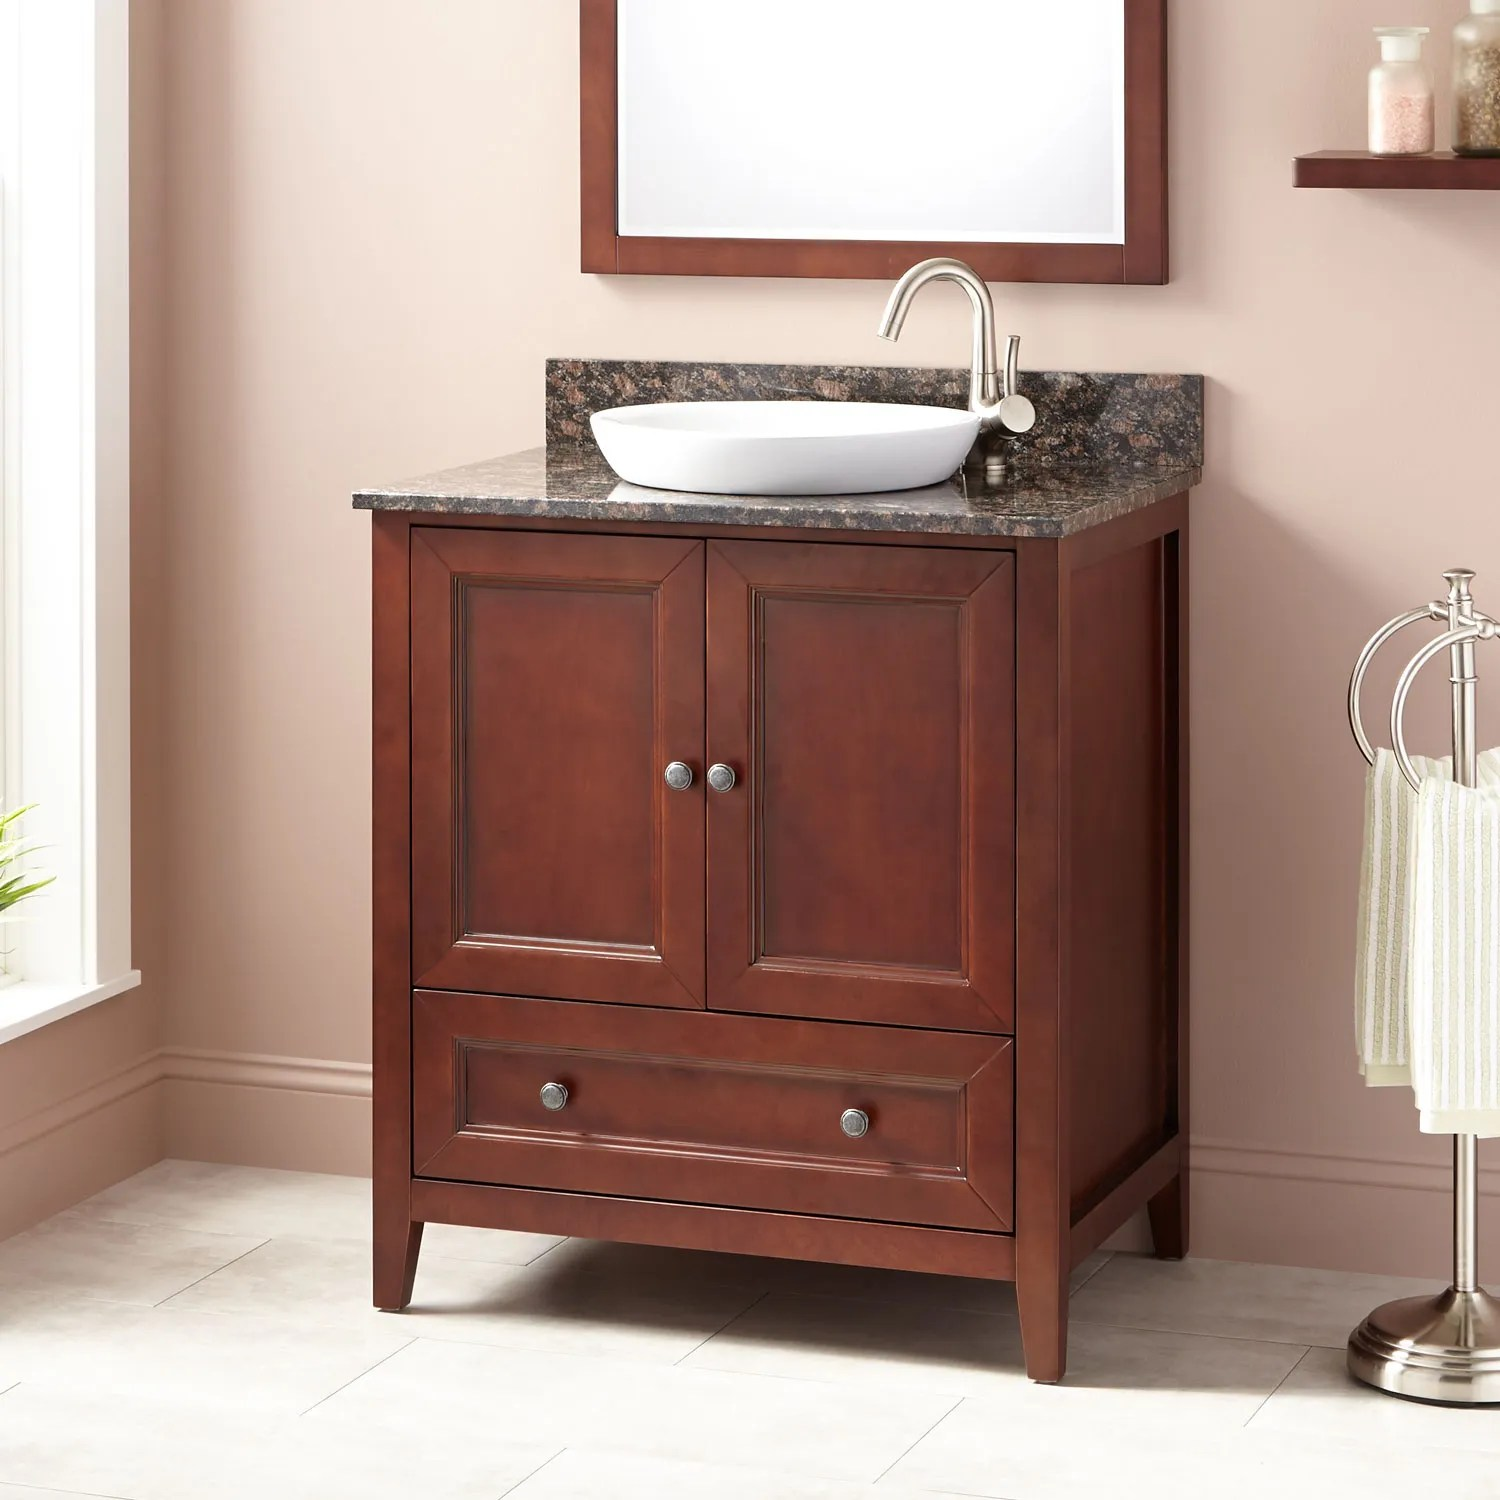 Vanity Red 36 Quot Kipley Vanity For Semi Recessed Sink Gray Wash